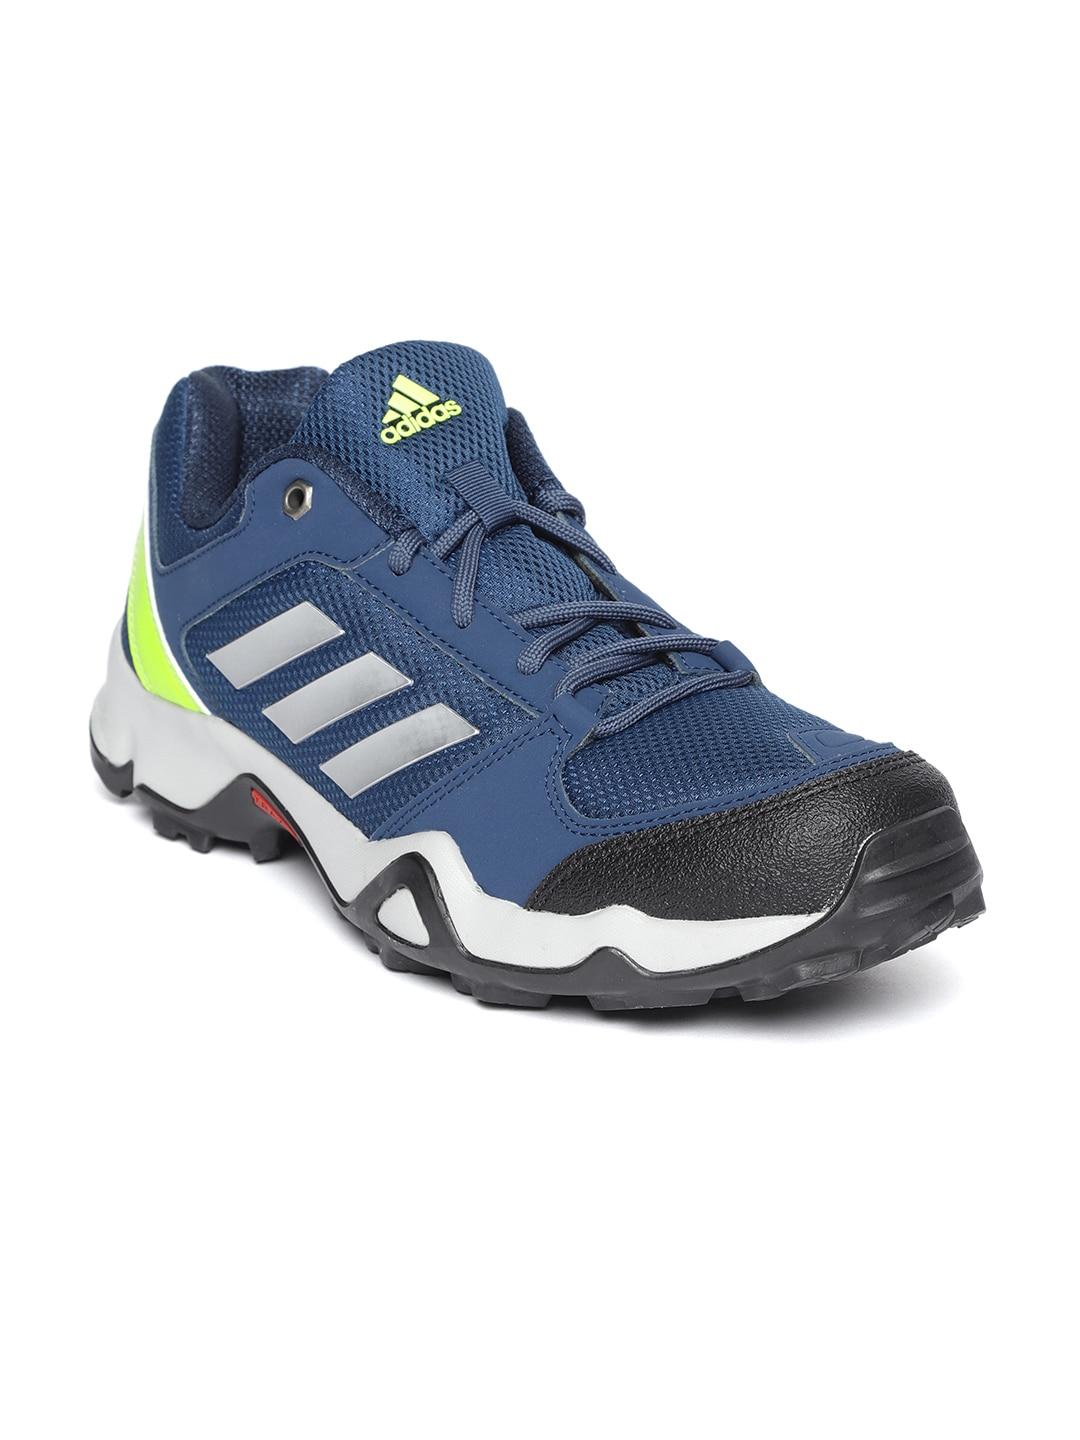 b2ae7e25410c Sports Shoes for Men - Buy Men Sports Shoes Online in India - Myntra